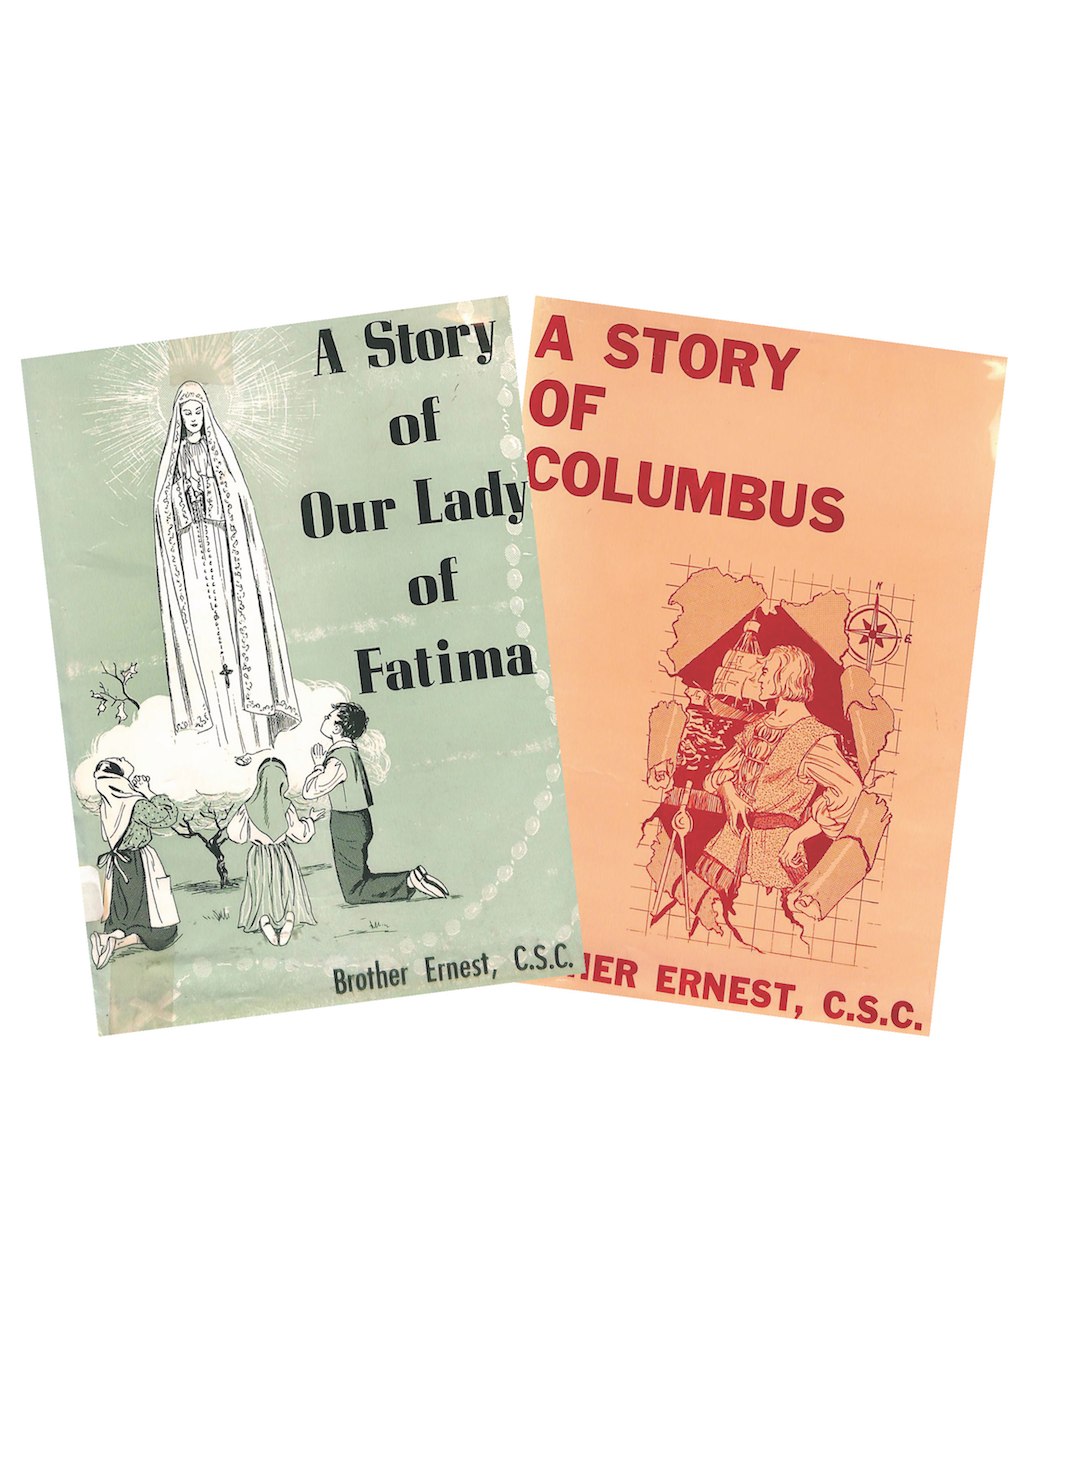 October 13th Special - Our Lady of Fatima and Christopher Columbus ...